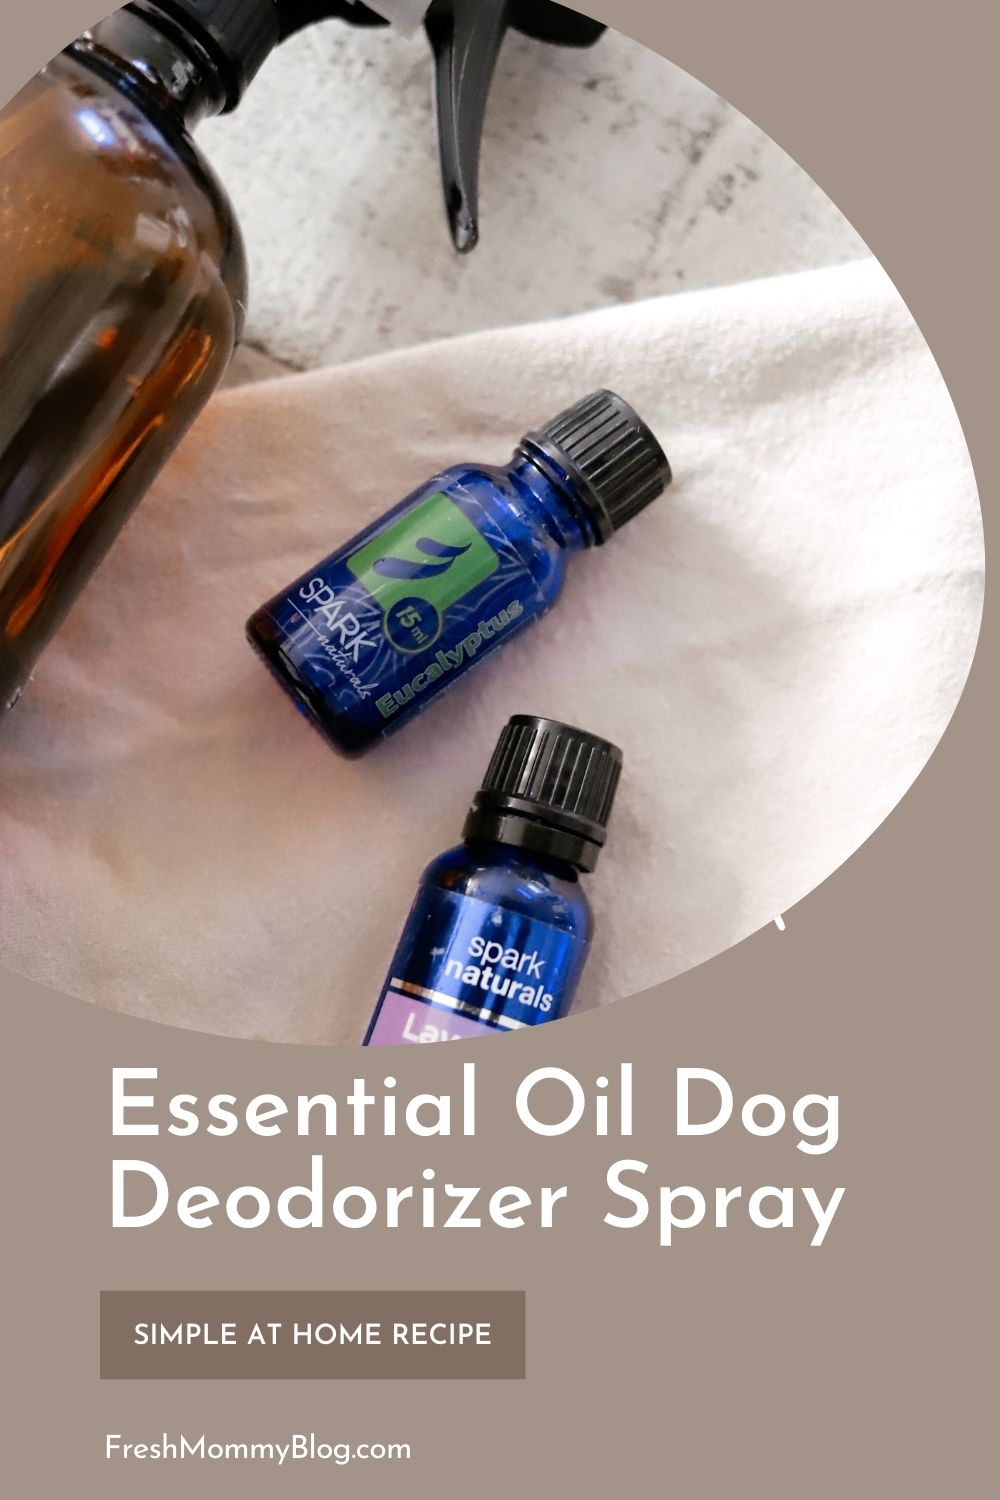 Essential Oils Safe for Dog Deodorizer Spray |Dog Deodorizer Spray by popular Florida lifestyle blog, Fresh Mommy Blog: Pinterest image of a glass amber spray bottle lying next to a bottle of Spark Naturals eucalyptus oil and Spark Naturals Lavender oil.